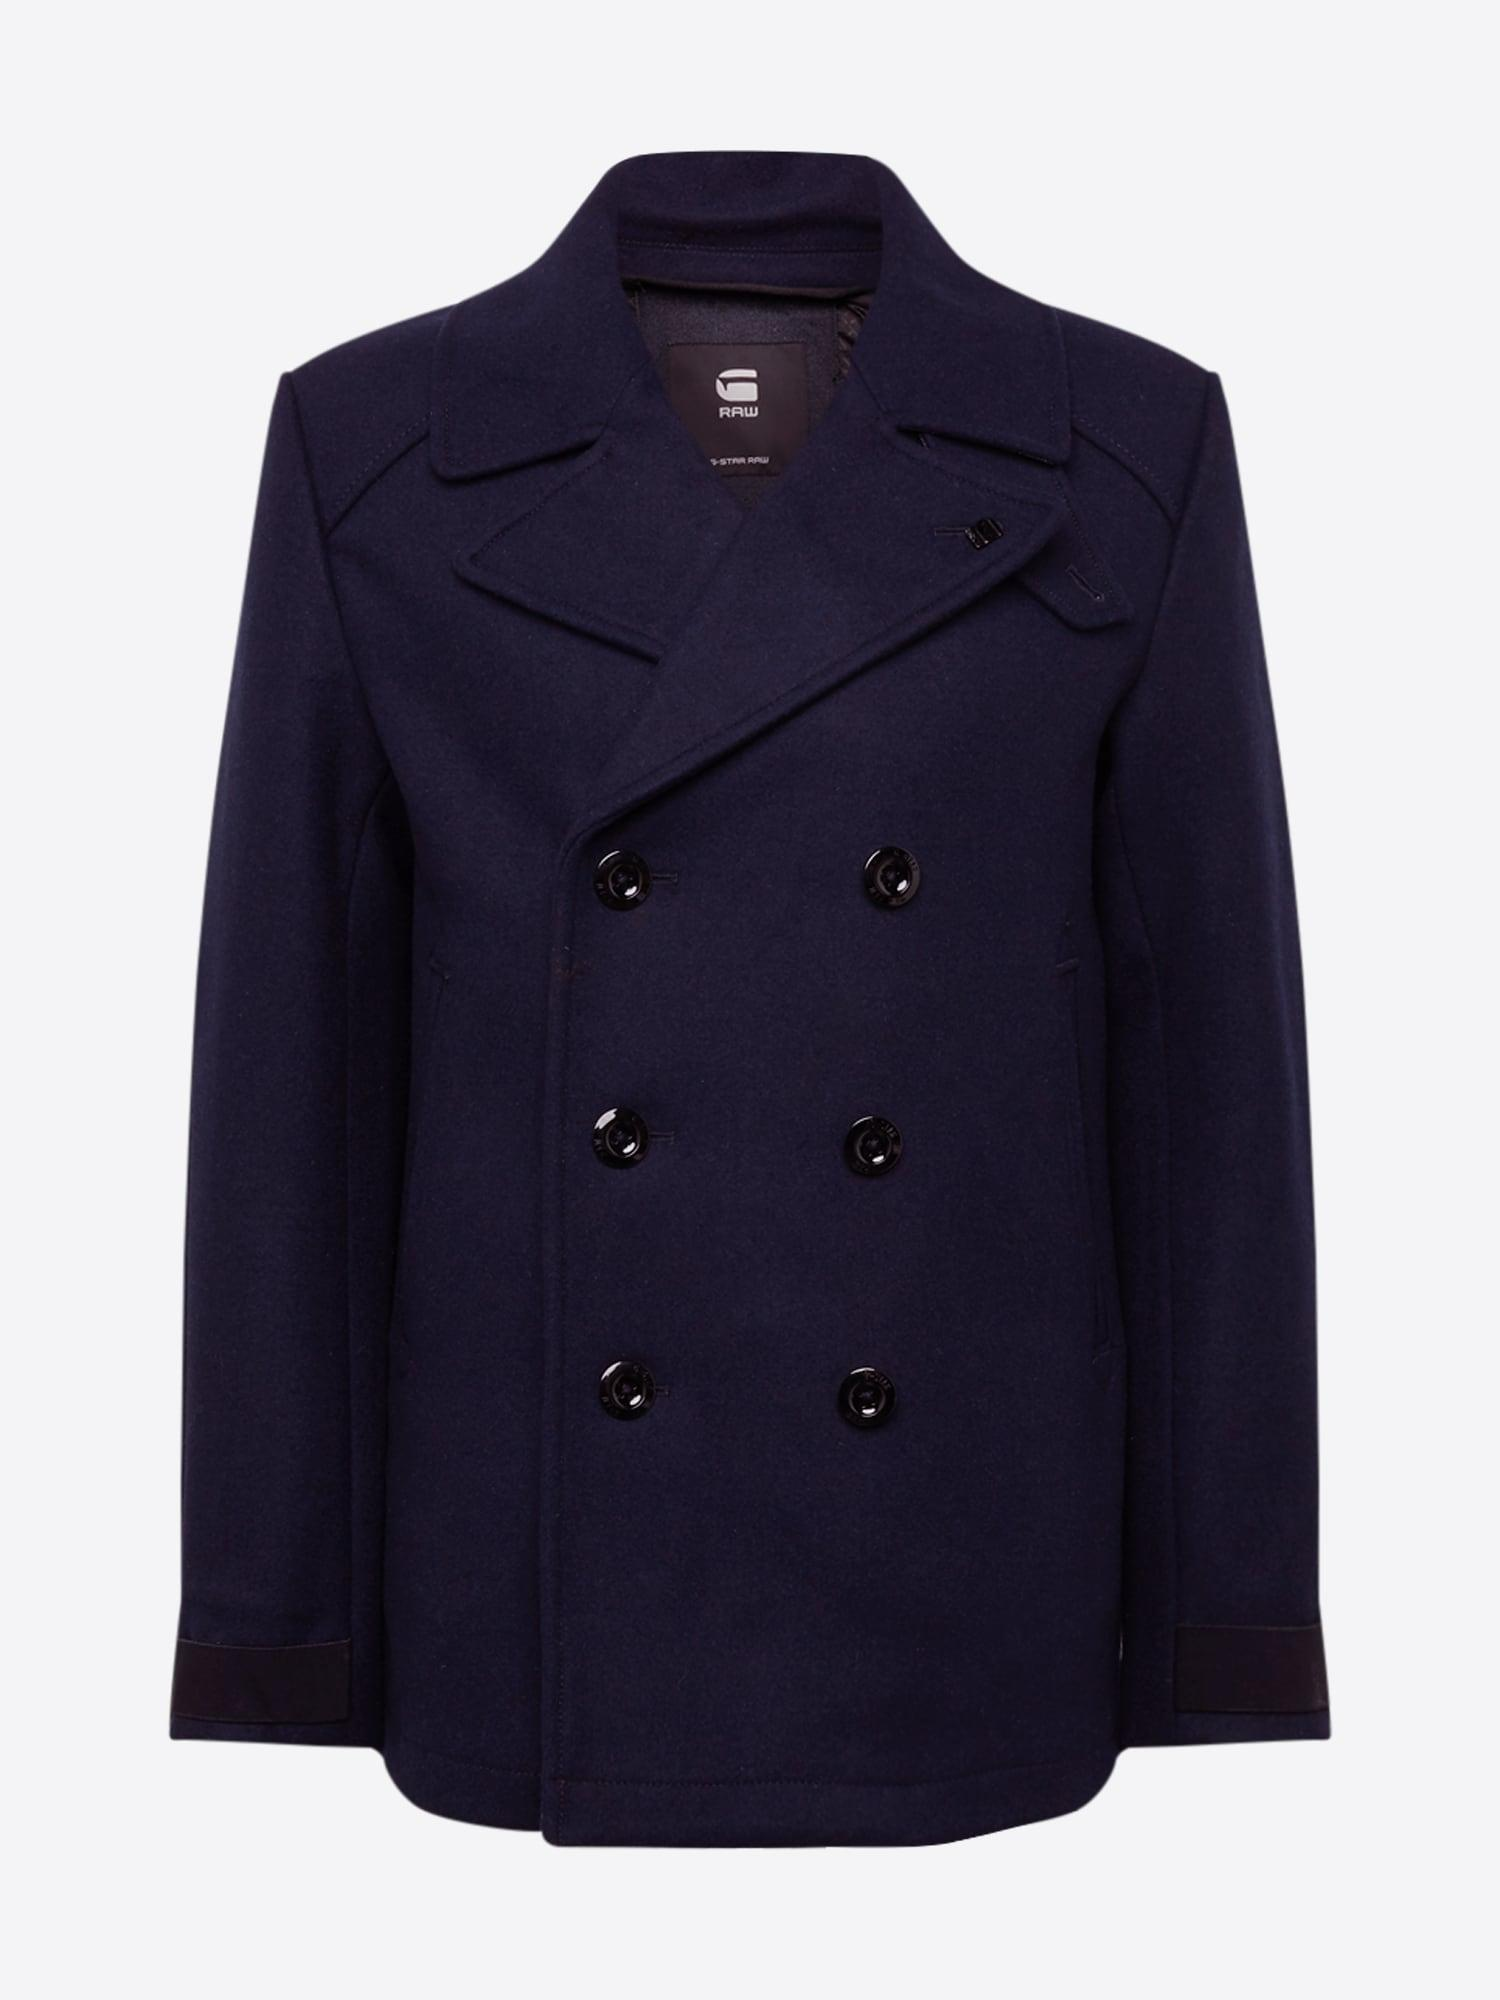 'traction 'traction Wool Wool 'traction Peacoat' Mantel Wool Peacoat' Mantel Mantel 7bYfgy6